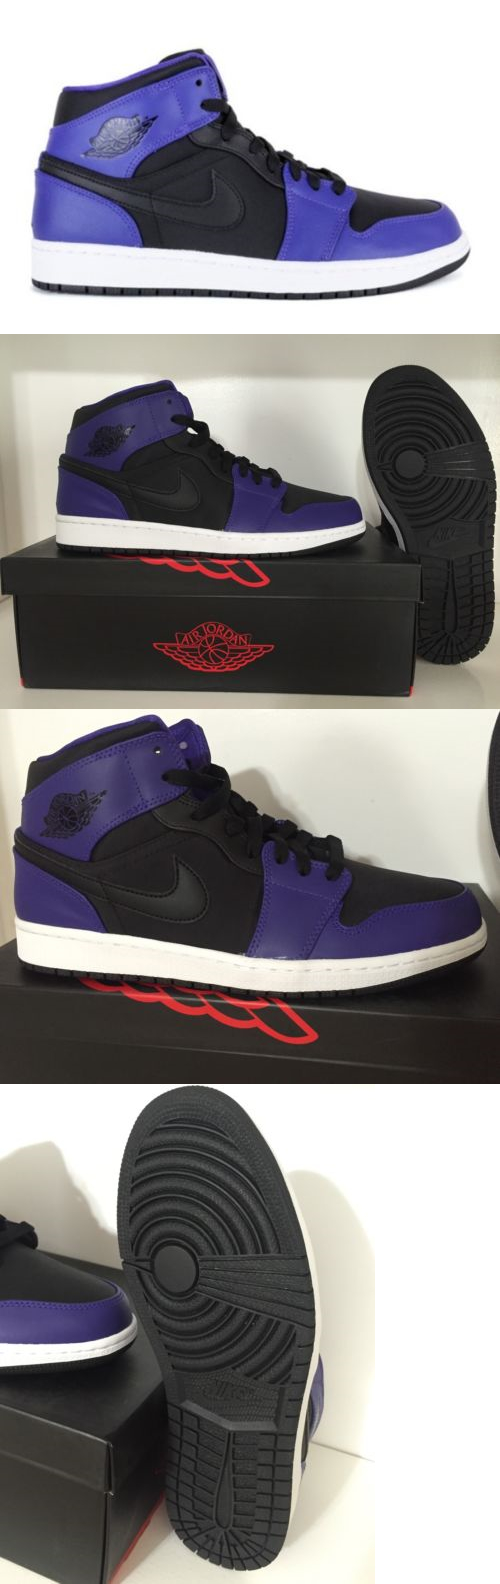 buy online 1d456 00192 Basketball  New Nike Mens Air Jordan 1 Mid Retro Black Dark Concord 554724- 019 (Size 9.5) -  BUY IT NOW ONLY   88.95 on eBay!